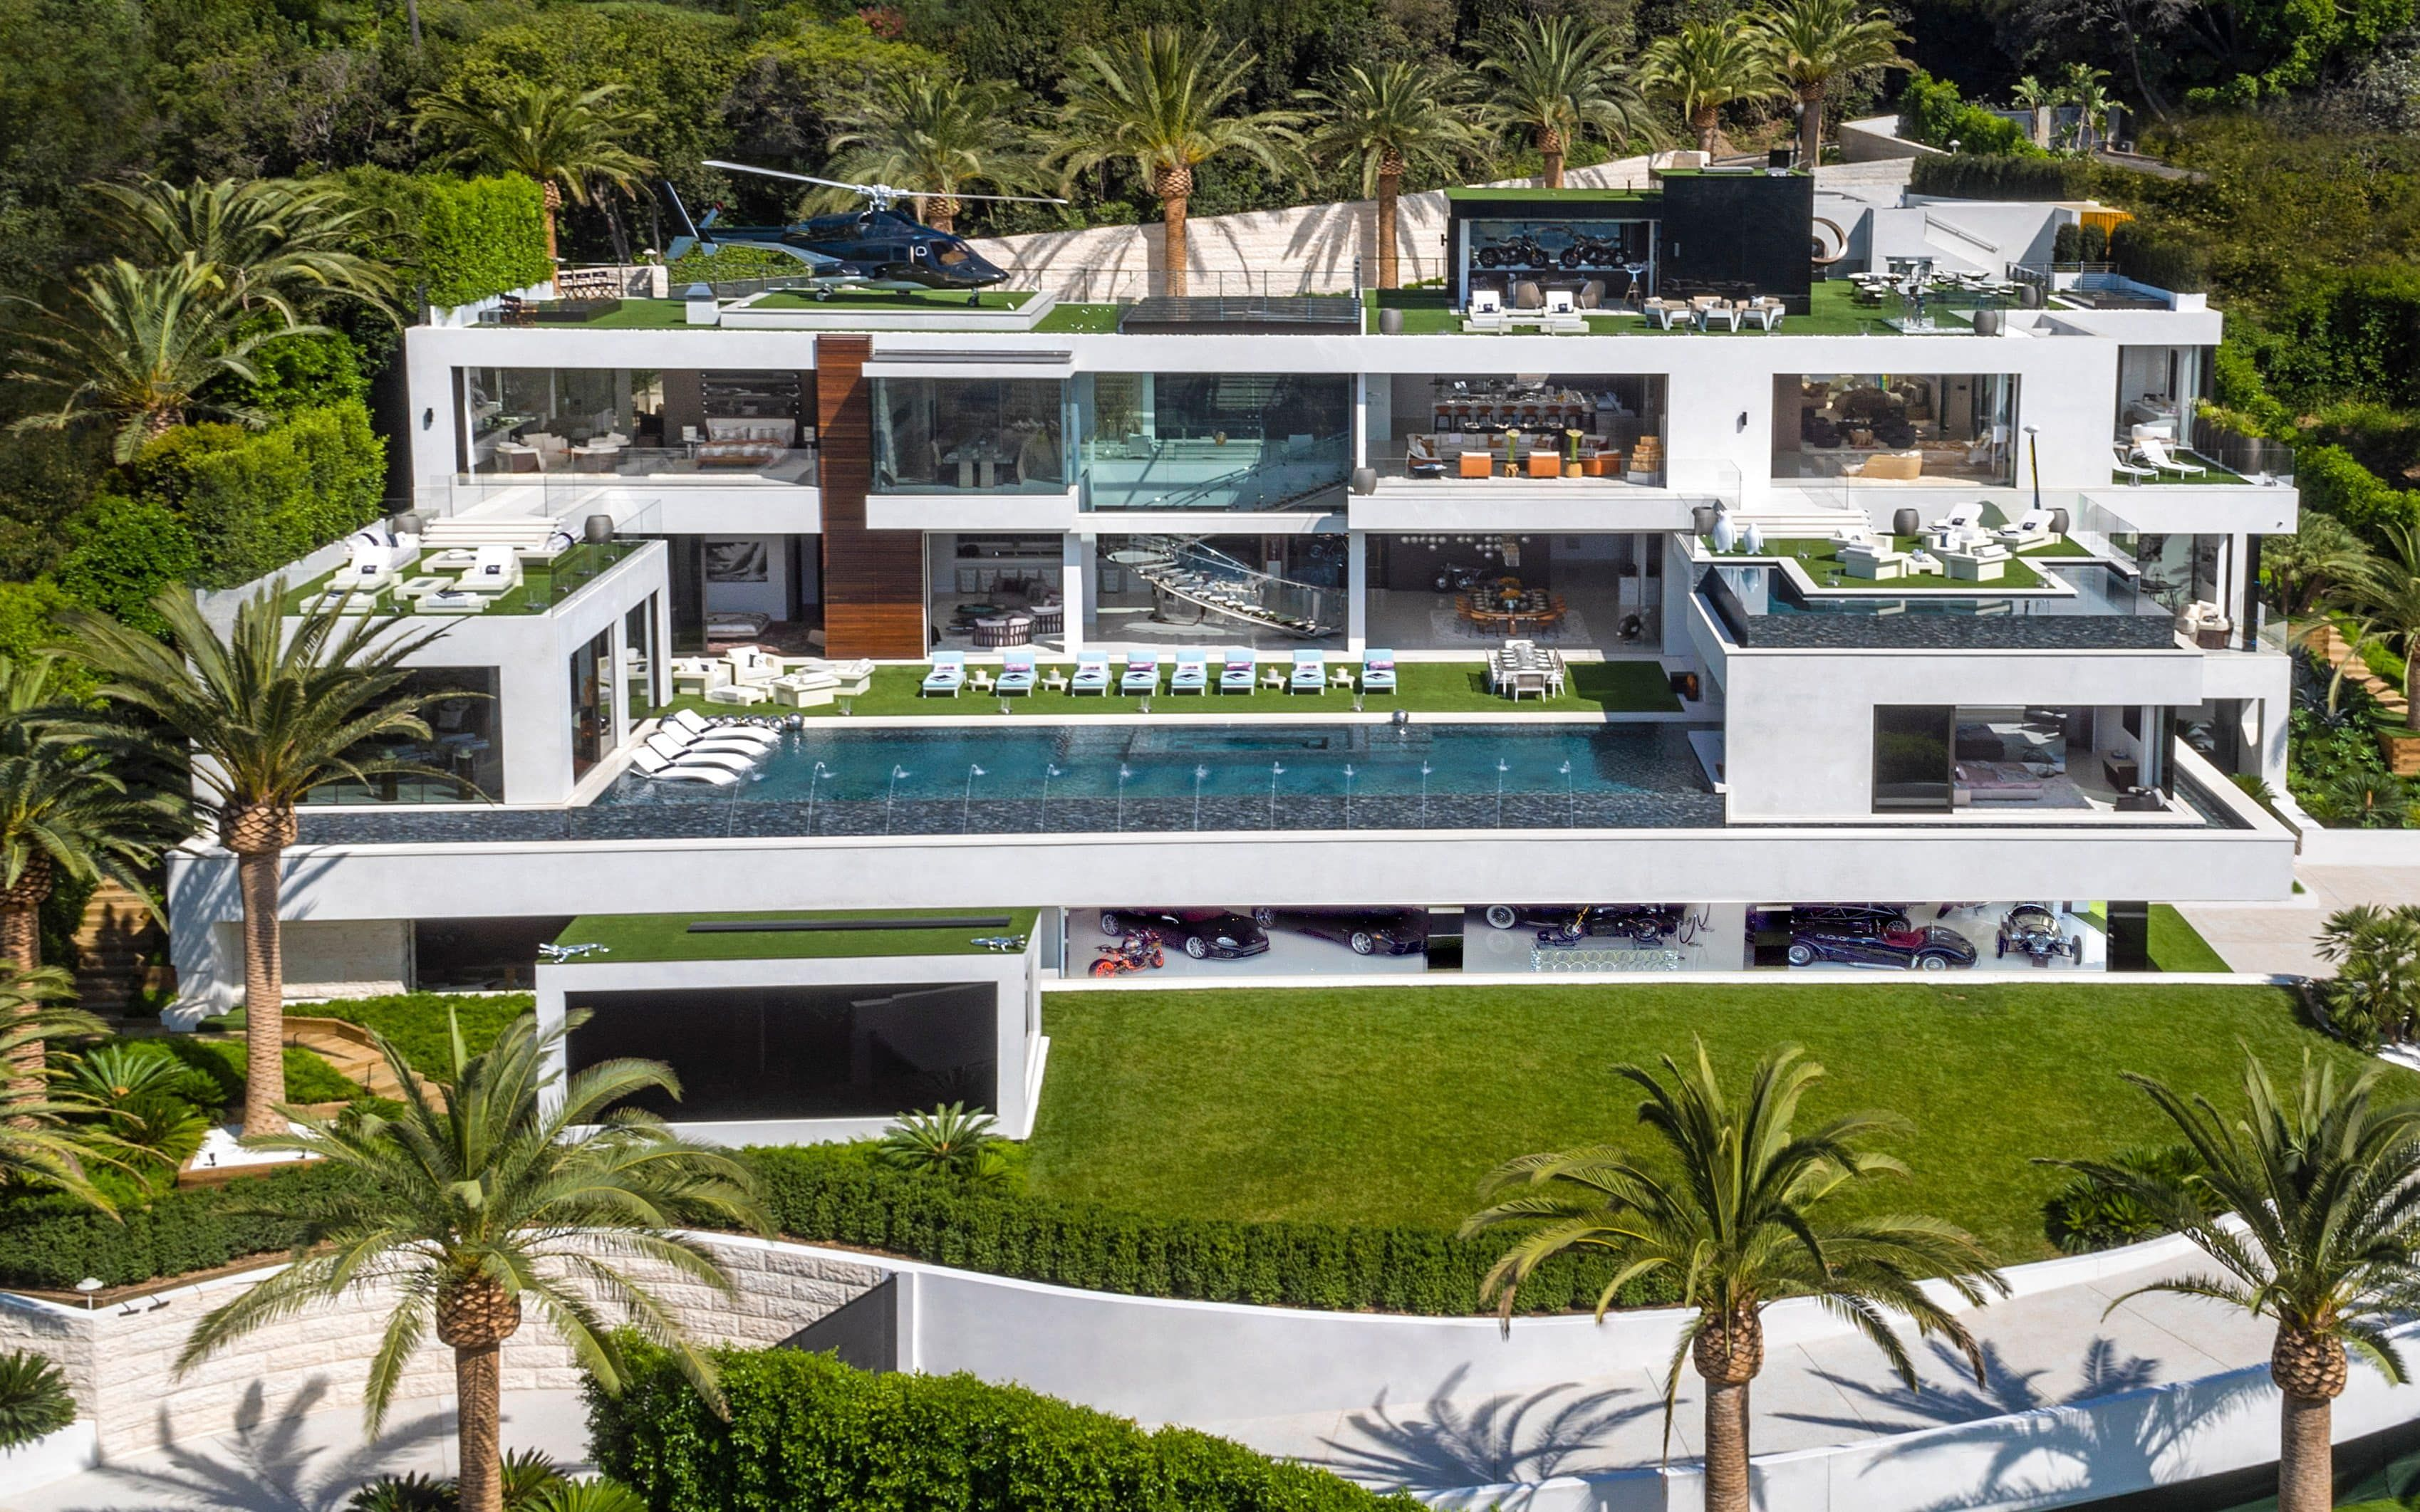 Bel Air Spec Manor Los Angeles 250million The Most Expensive House In The Us Has 12 Bedrooms 21 Bathro Houses In America Expensive Houses Bel Air Mansion